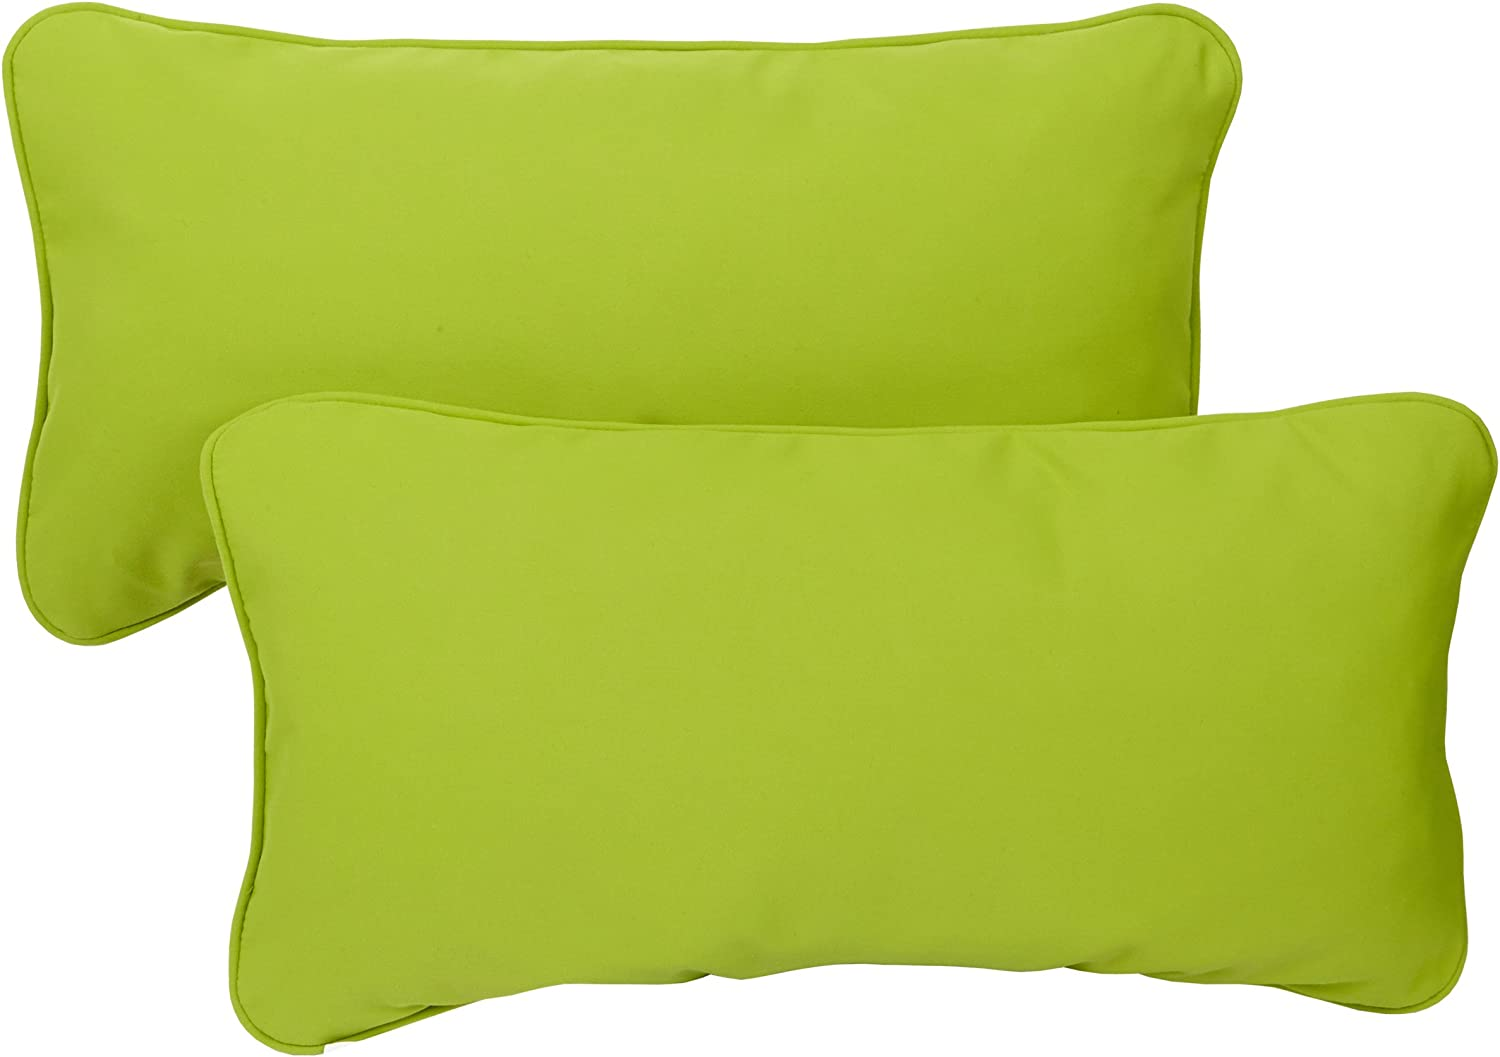 Mozaic Company Sunbrella Indoor/ Outdoor 12 by 24-inch Corded Pillow, Macaw Green, Set of 2